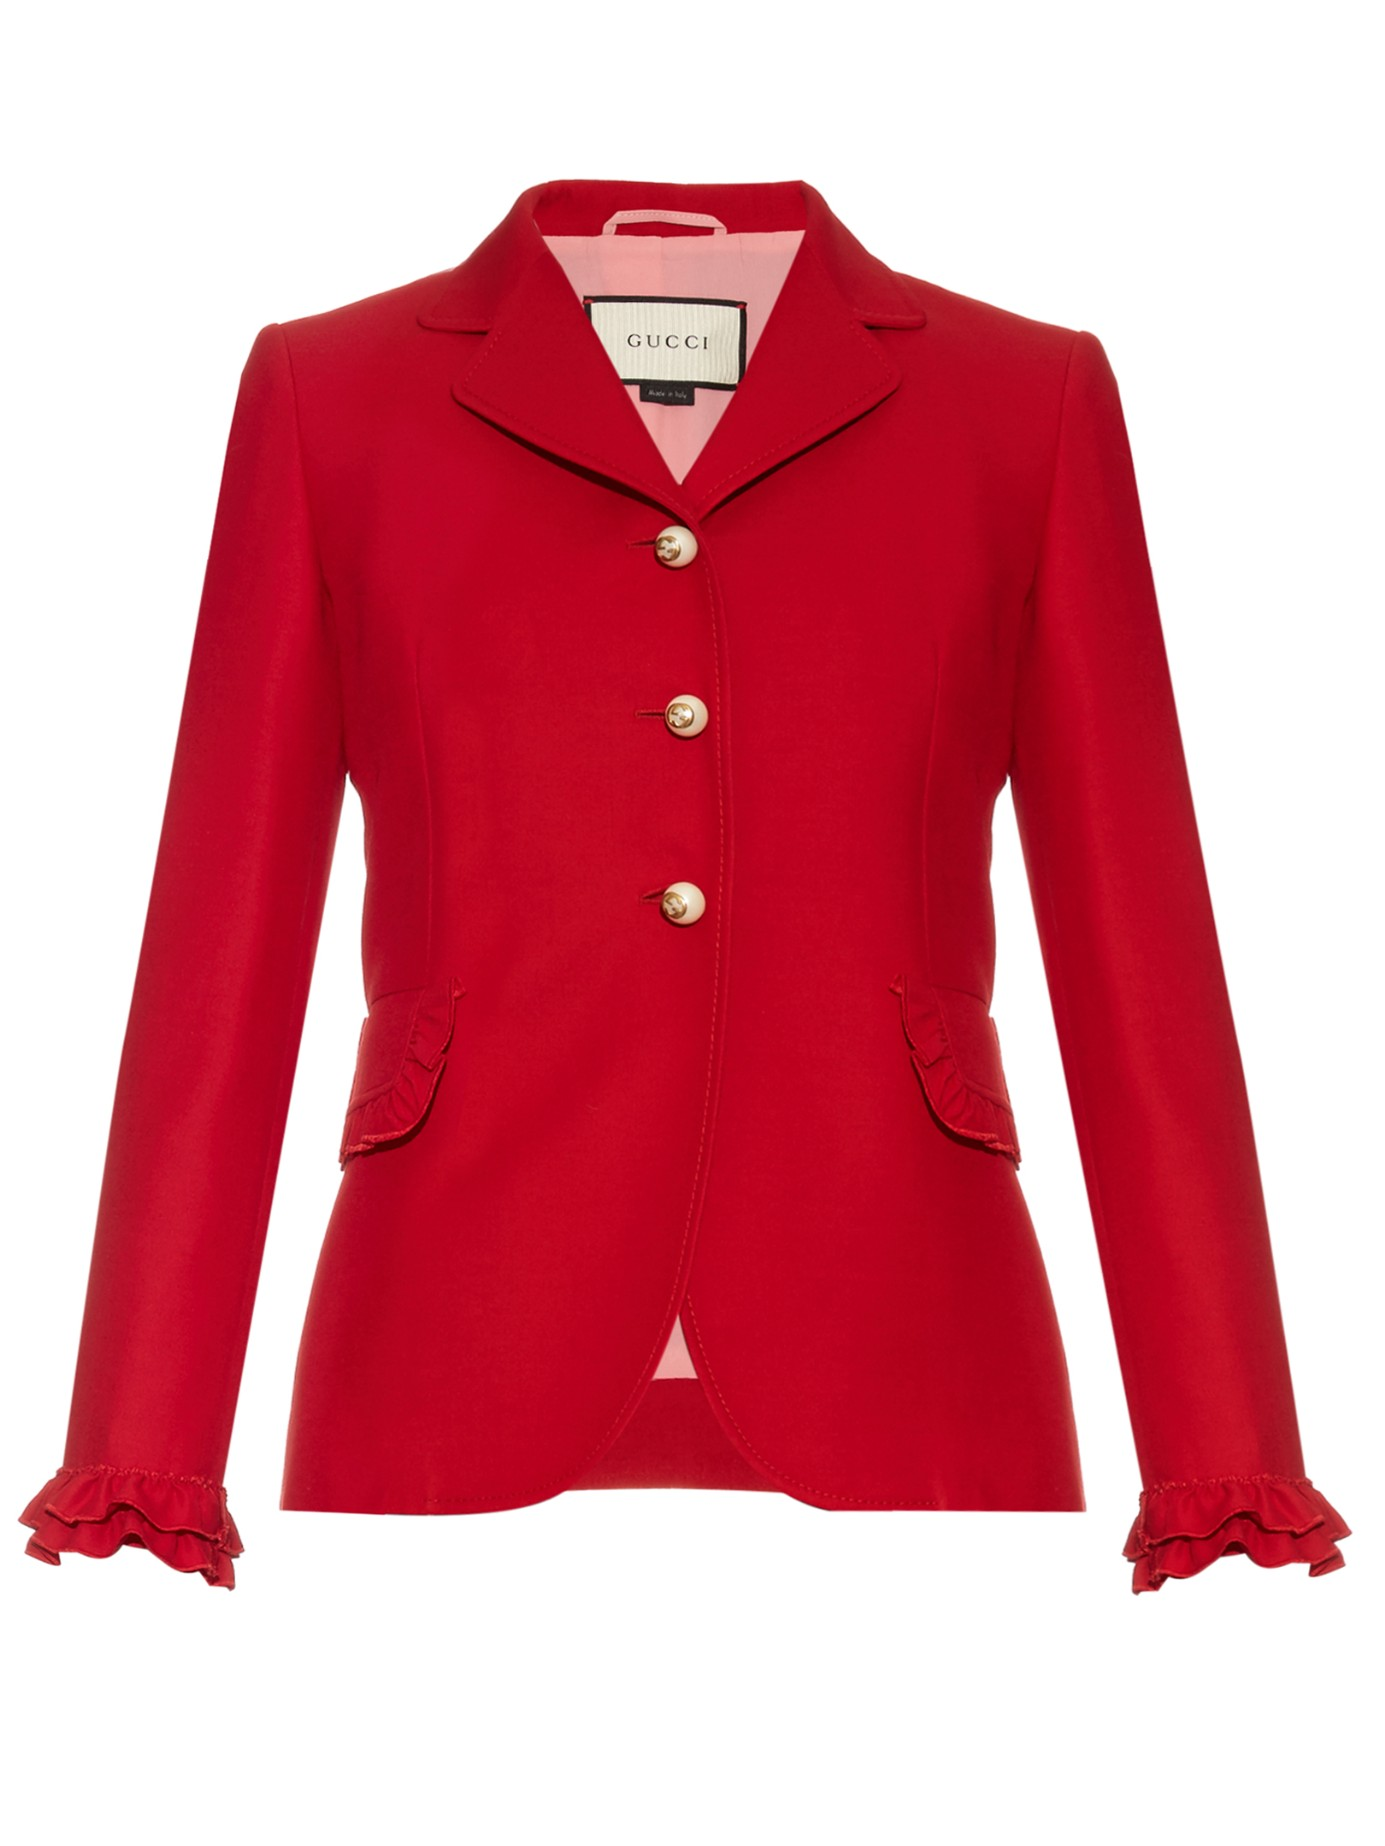 CASUAL CHIC: GUCCI Ruffle-trimmed wool and silk-blend jacket